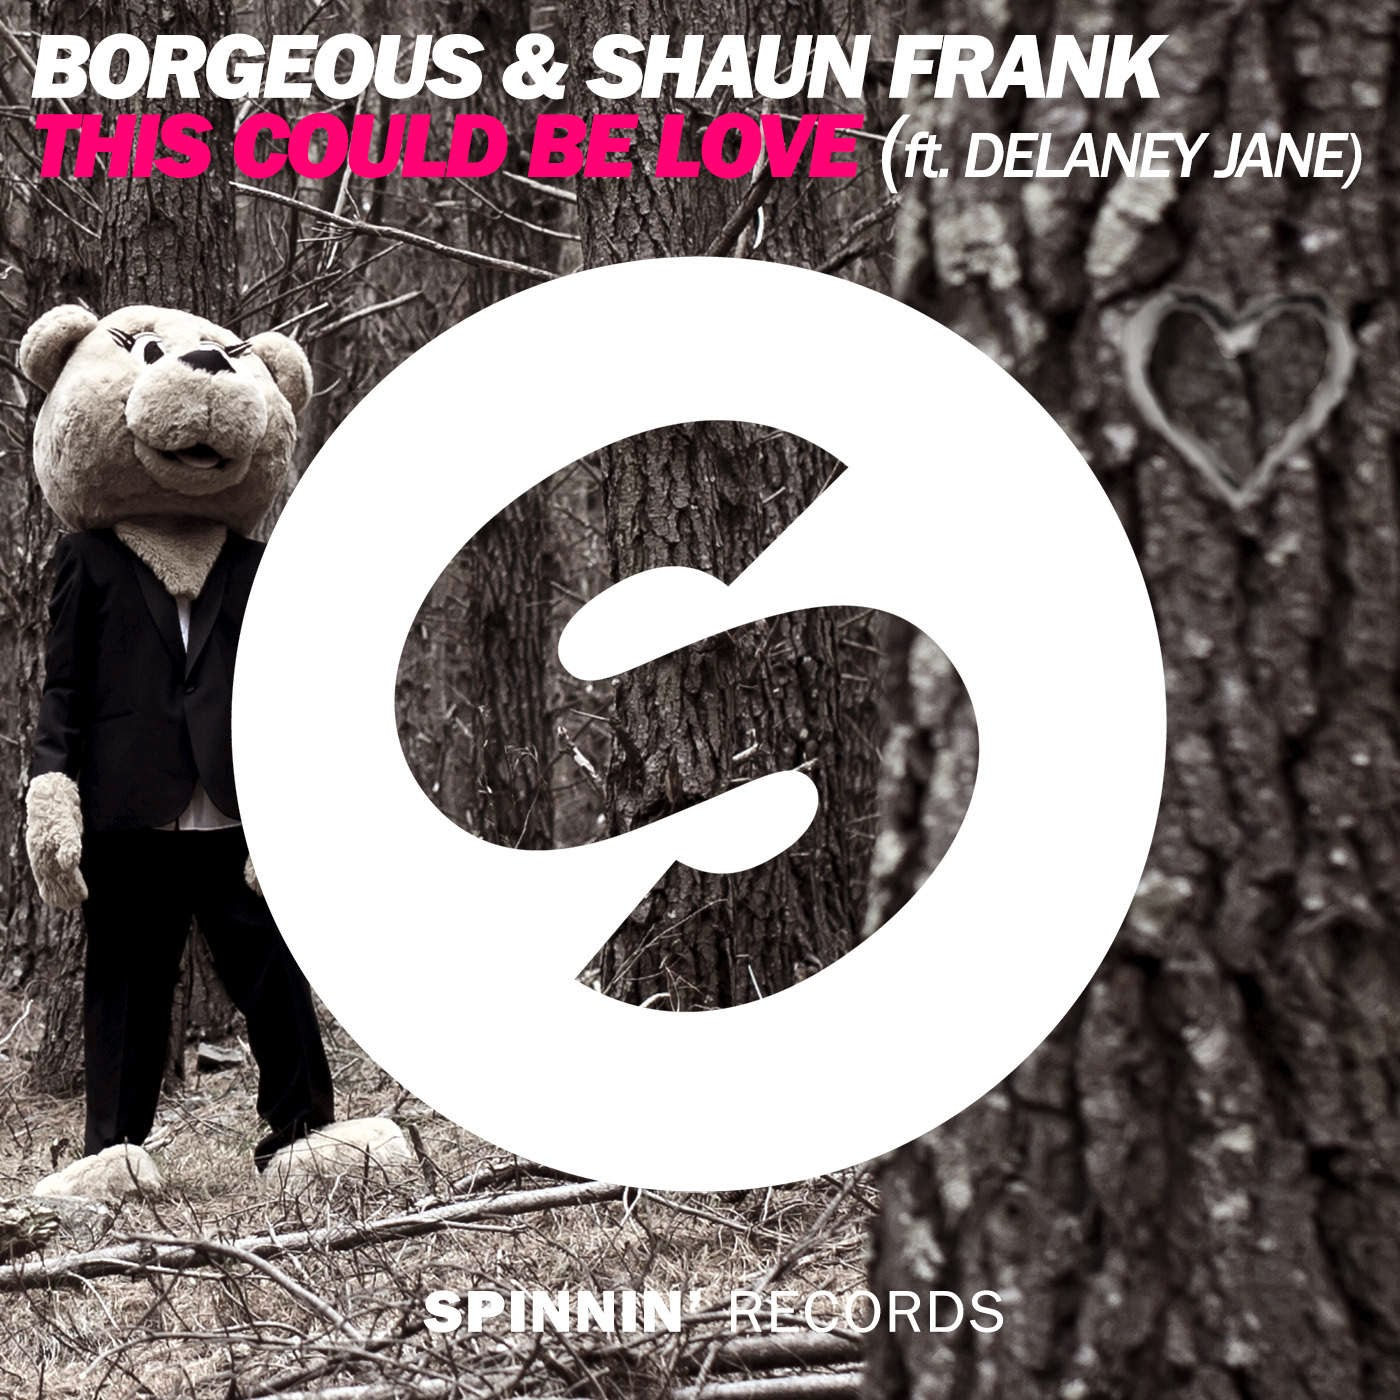 Borgeous & Shaun Frank - This Could Be Love feat. Delaney Jane - Single  Cover